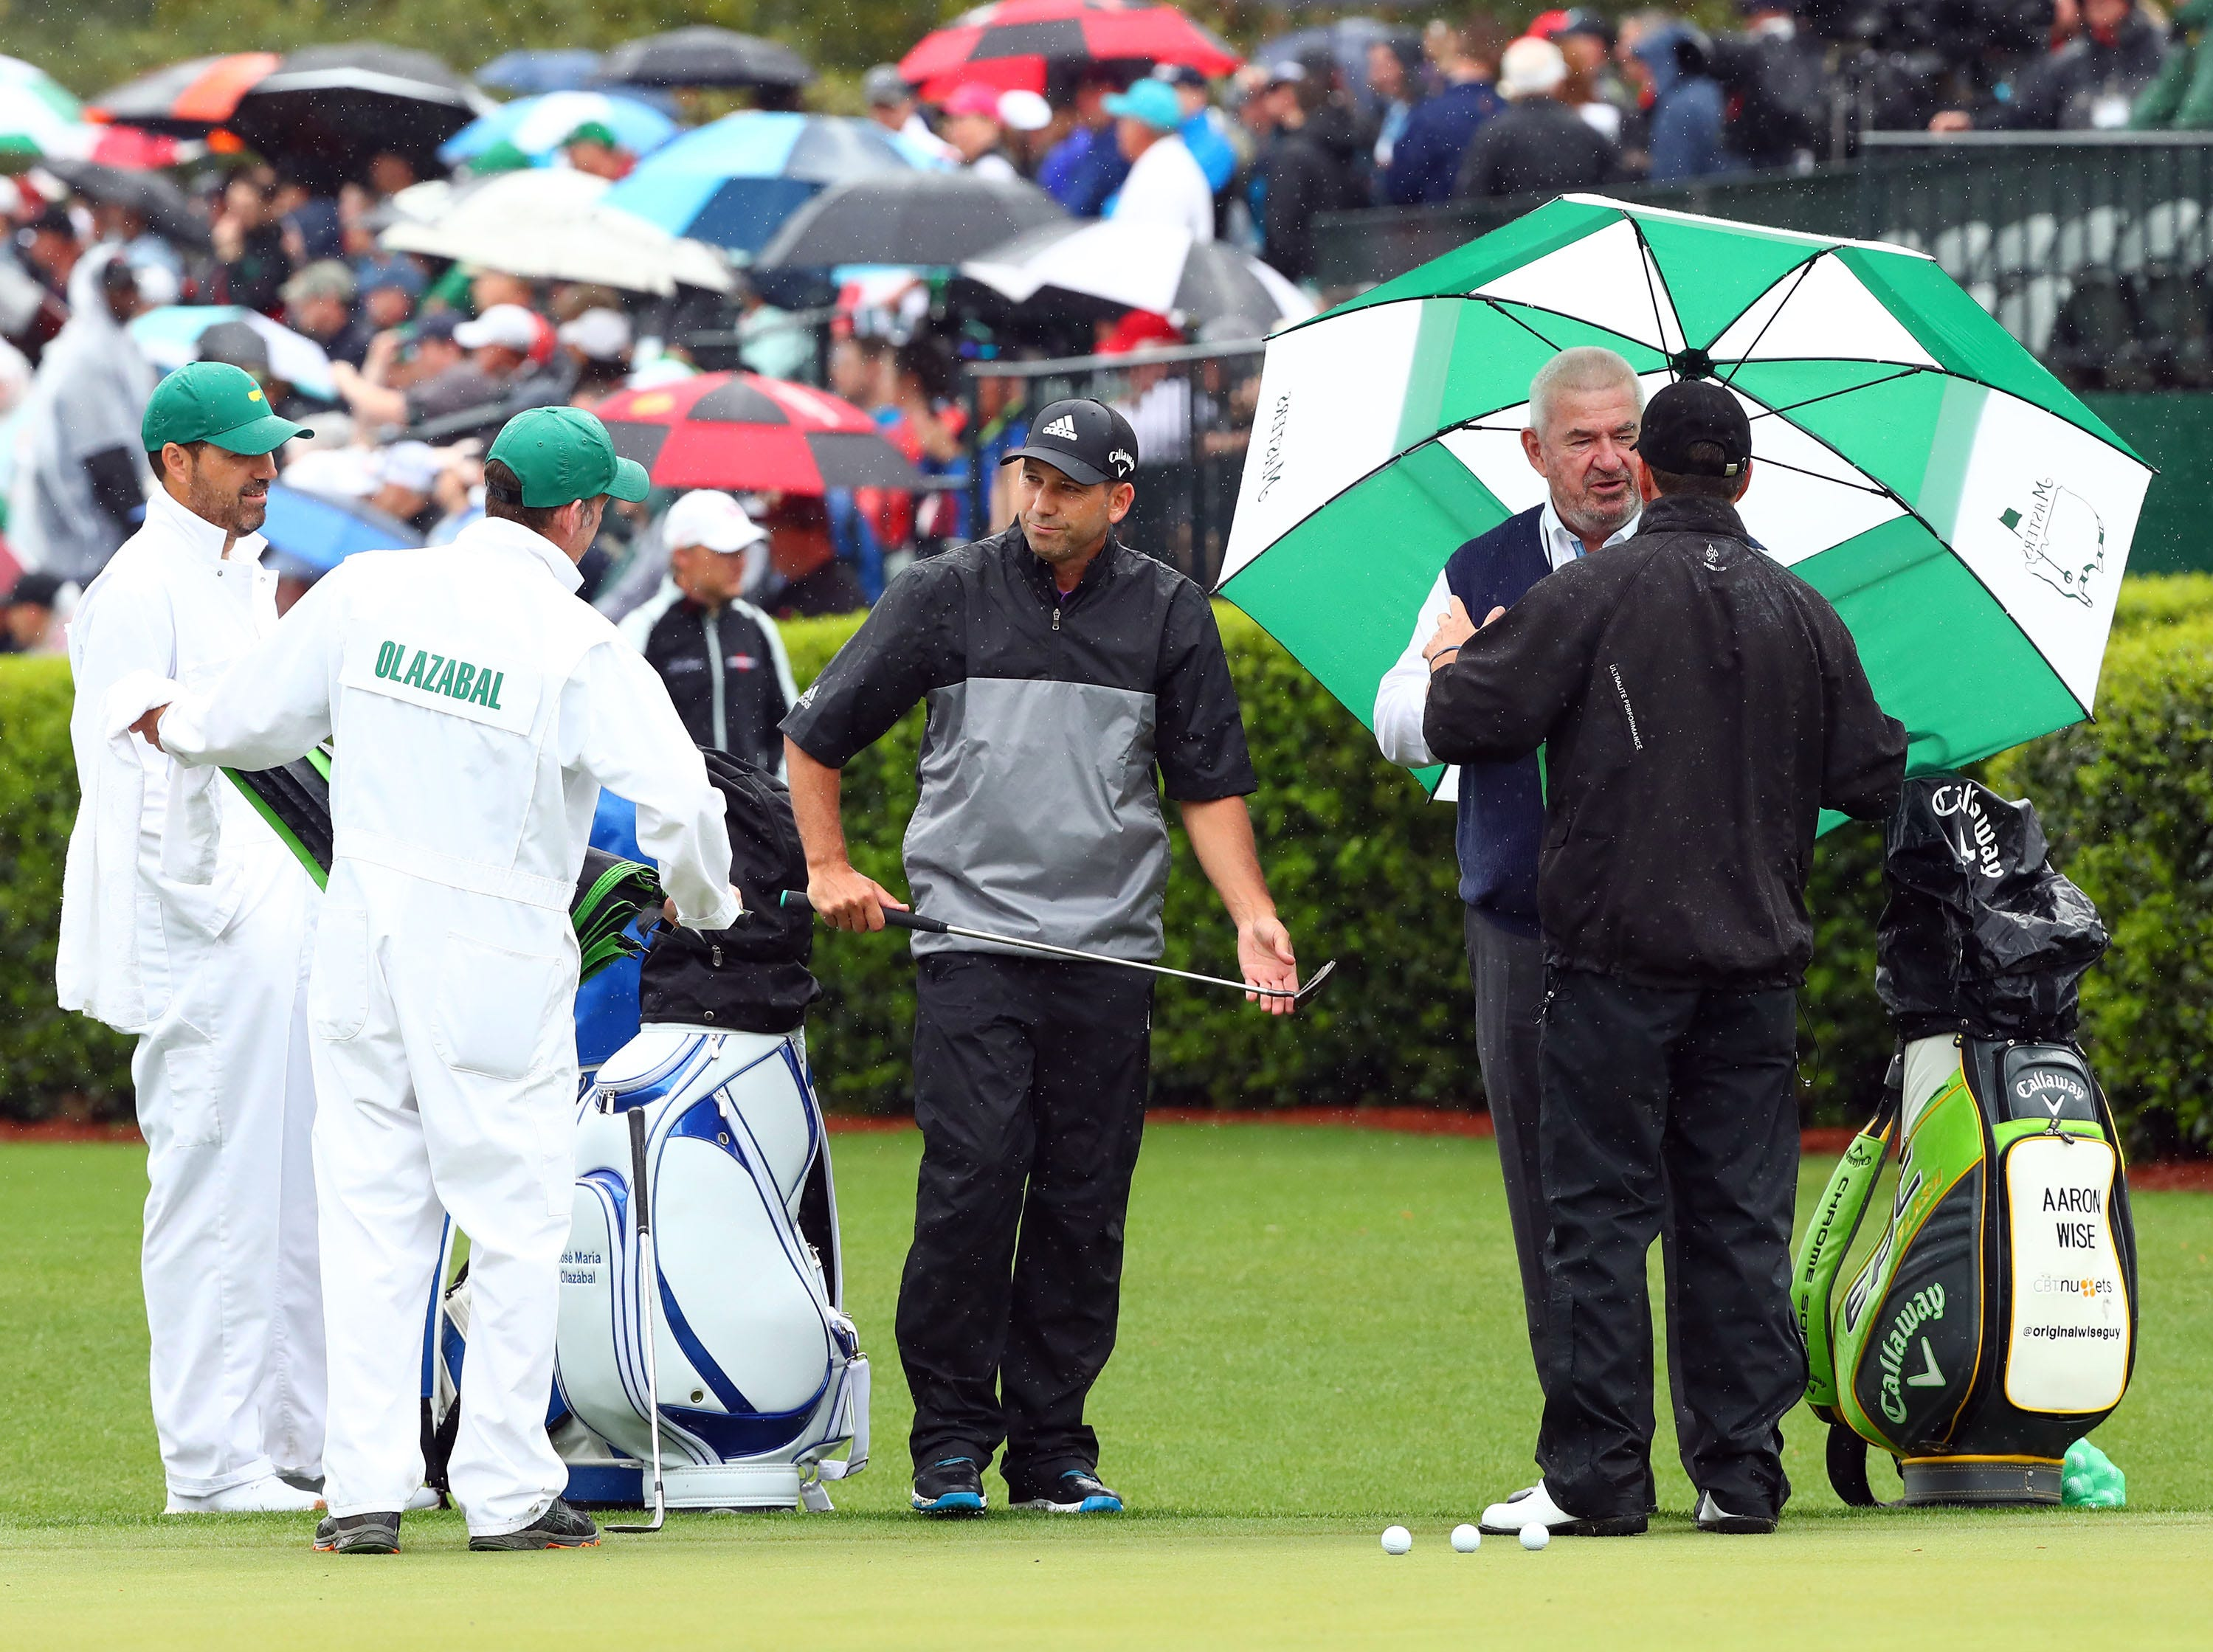 Apr 9, 2019; Augusta, GA, USA; Masters champions Sergio Garcia of Spain and Jose Maria Olazabal of Spain talks with John Paramor, the European Tour's chief rules official at the practice facility during a practice round for The Masters golf tournament at Augusta National Golf Club. Mandatory Credit: Rob Schumacher-USA TODAY Sports